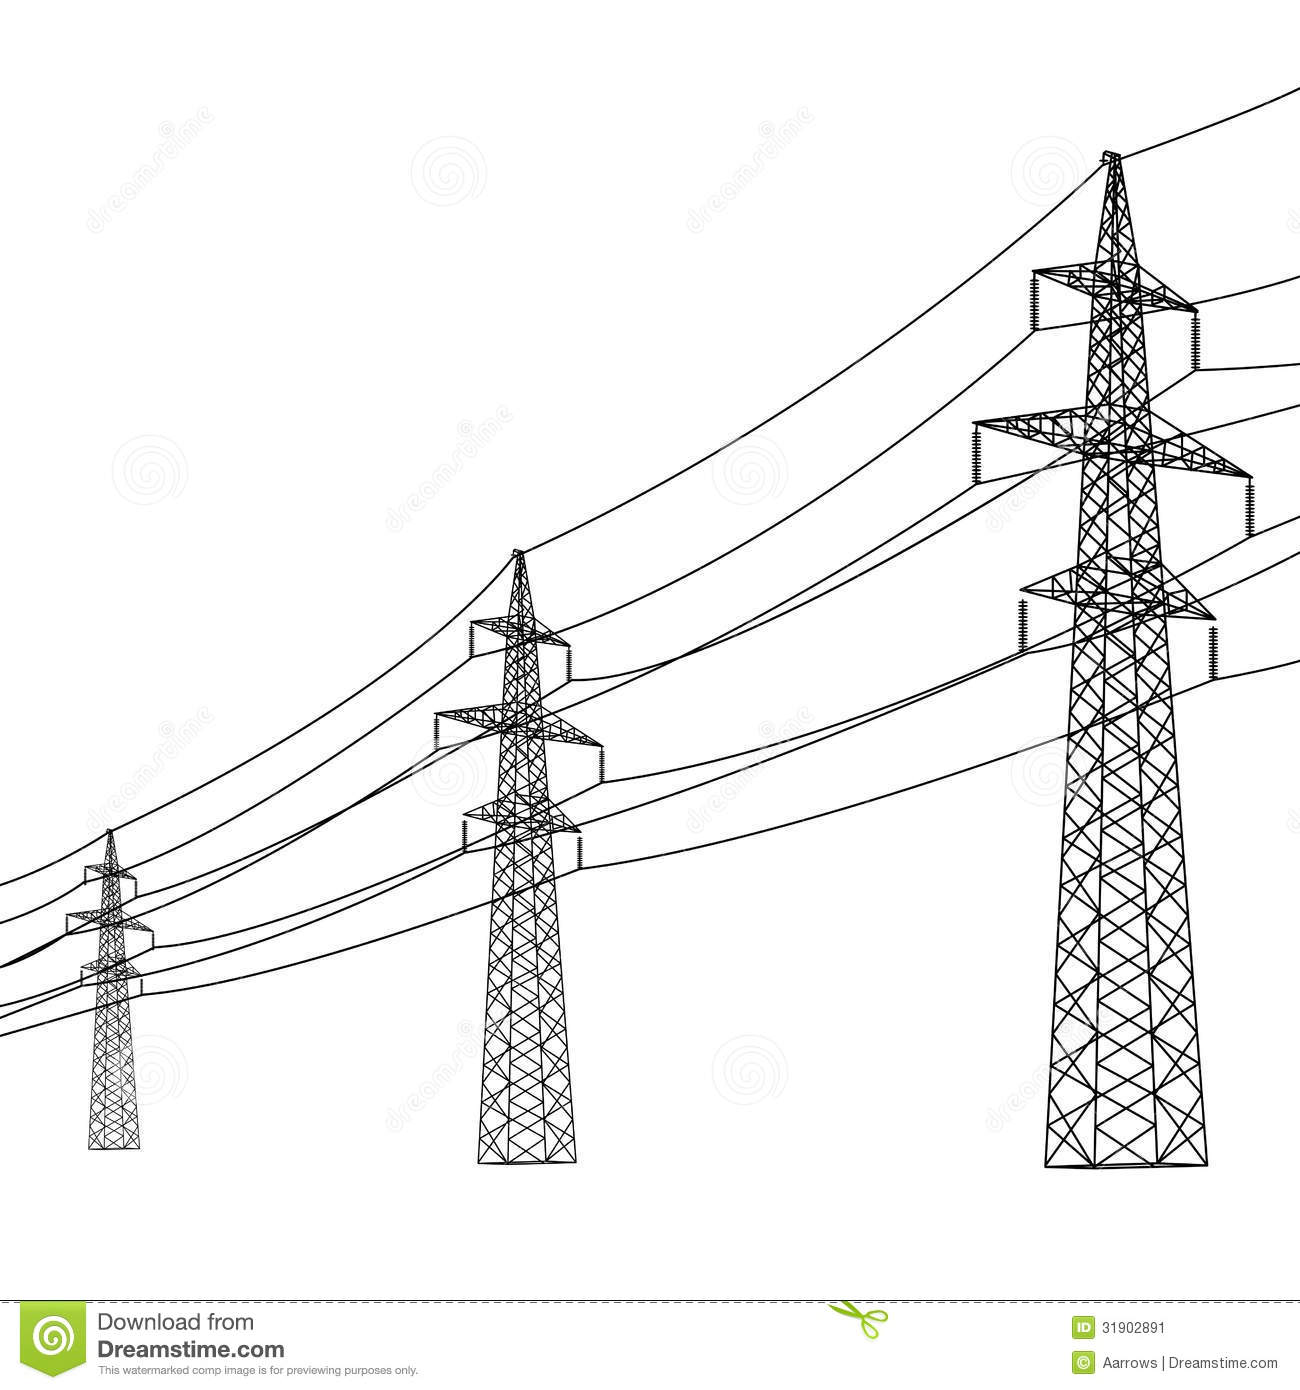 High Voltage Electrical Lines : Silhouette of high voltage power lines stock image